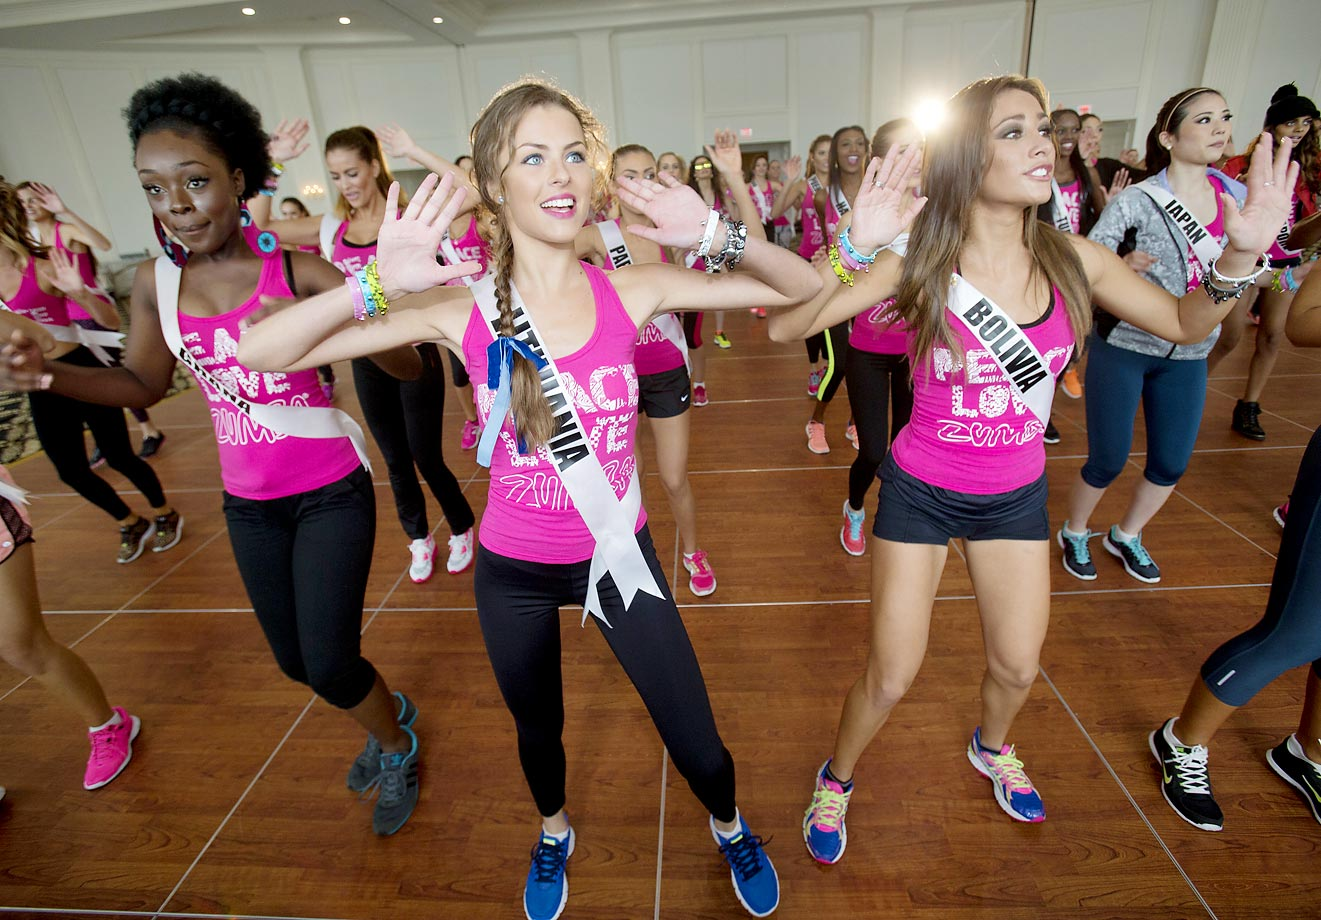 Contestants participate in a Zumba Class to warm up for the upcoming Miss Universe pageant in Miami.